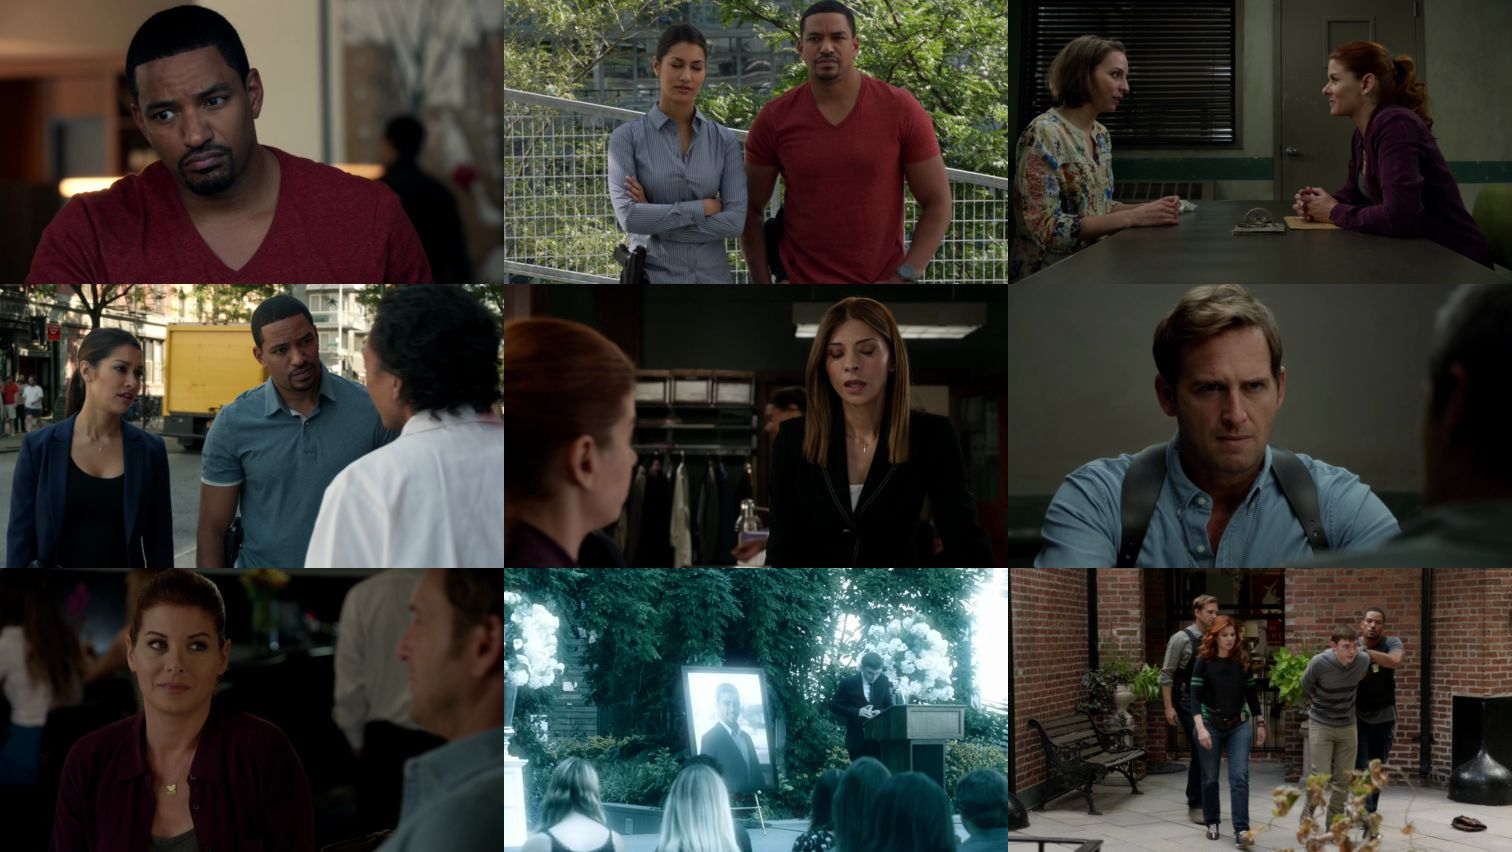 The Mysteries of Laura S02E03 720p HDTV X264-DIMENSION